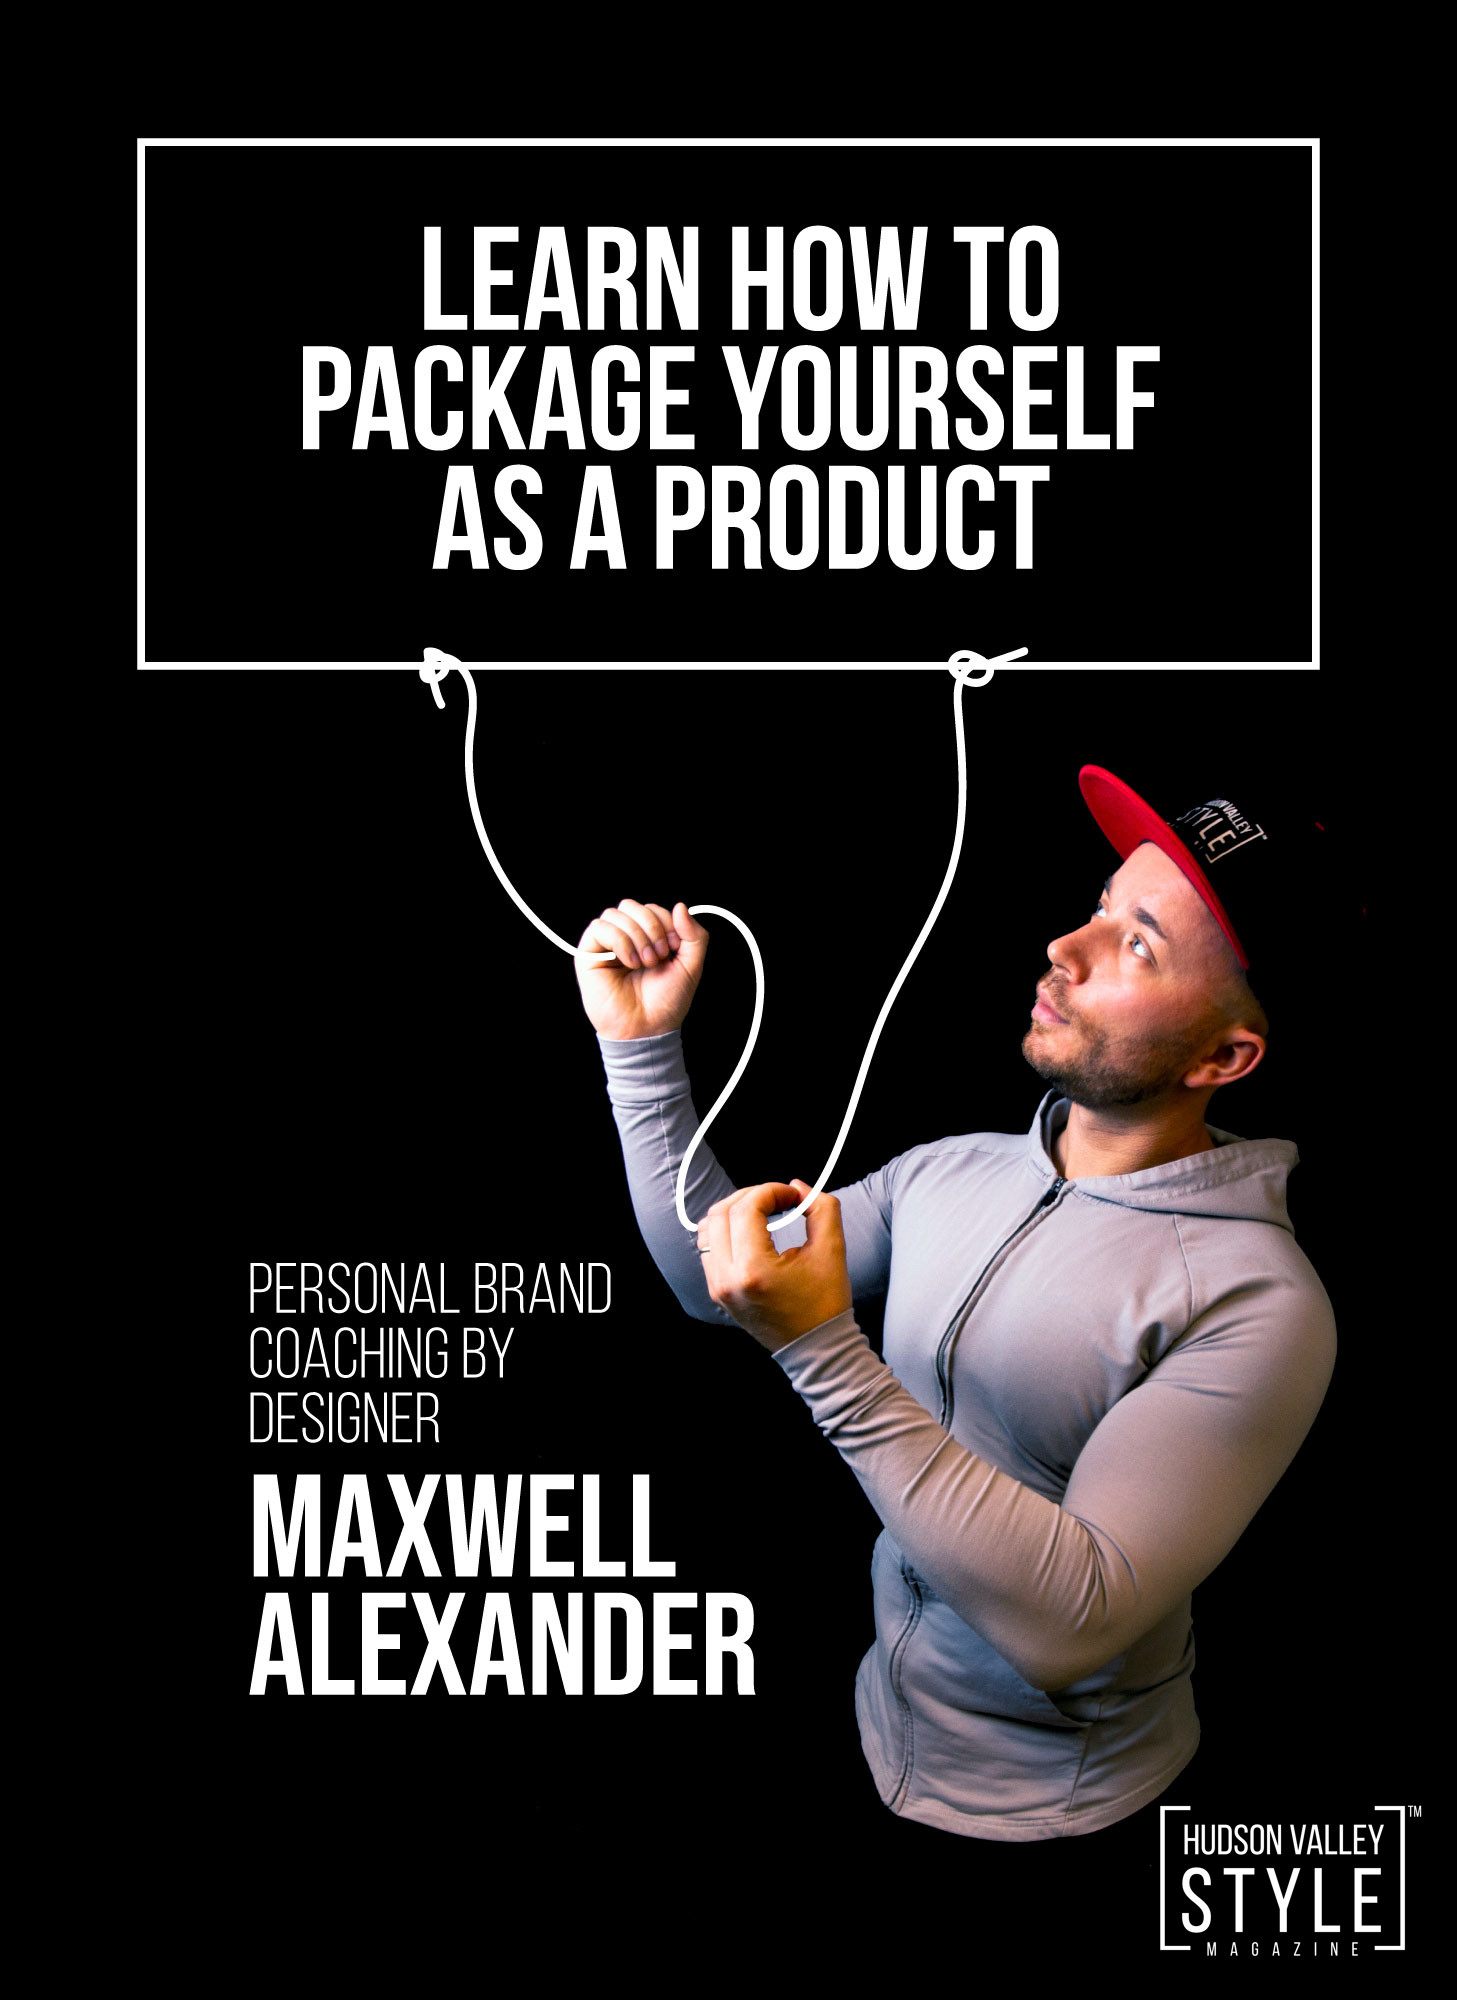 How to Package Yourself as a Product - Personal Brand Coaching by Designer Maxwell Alexander